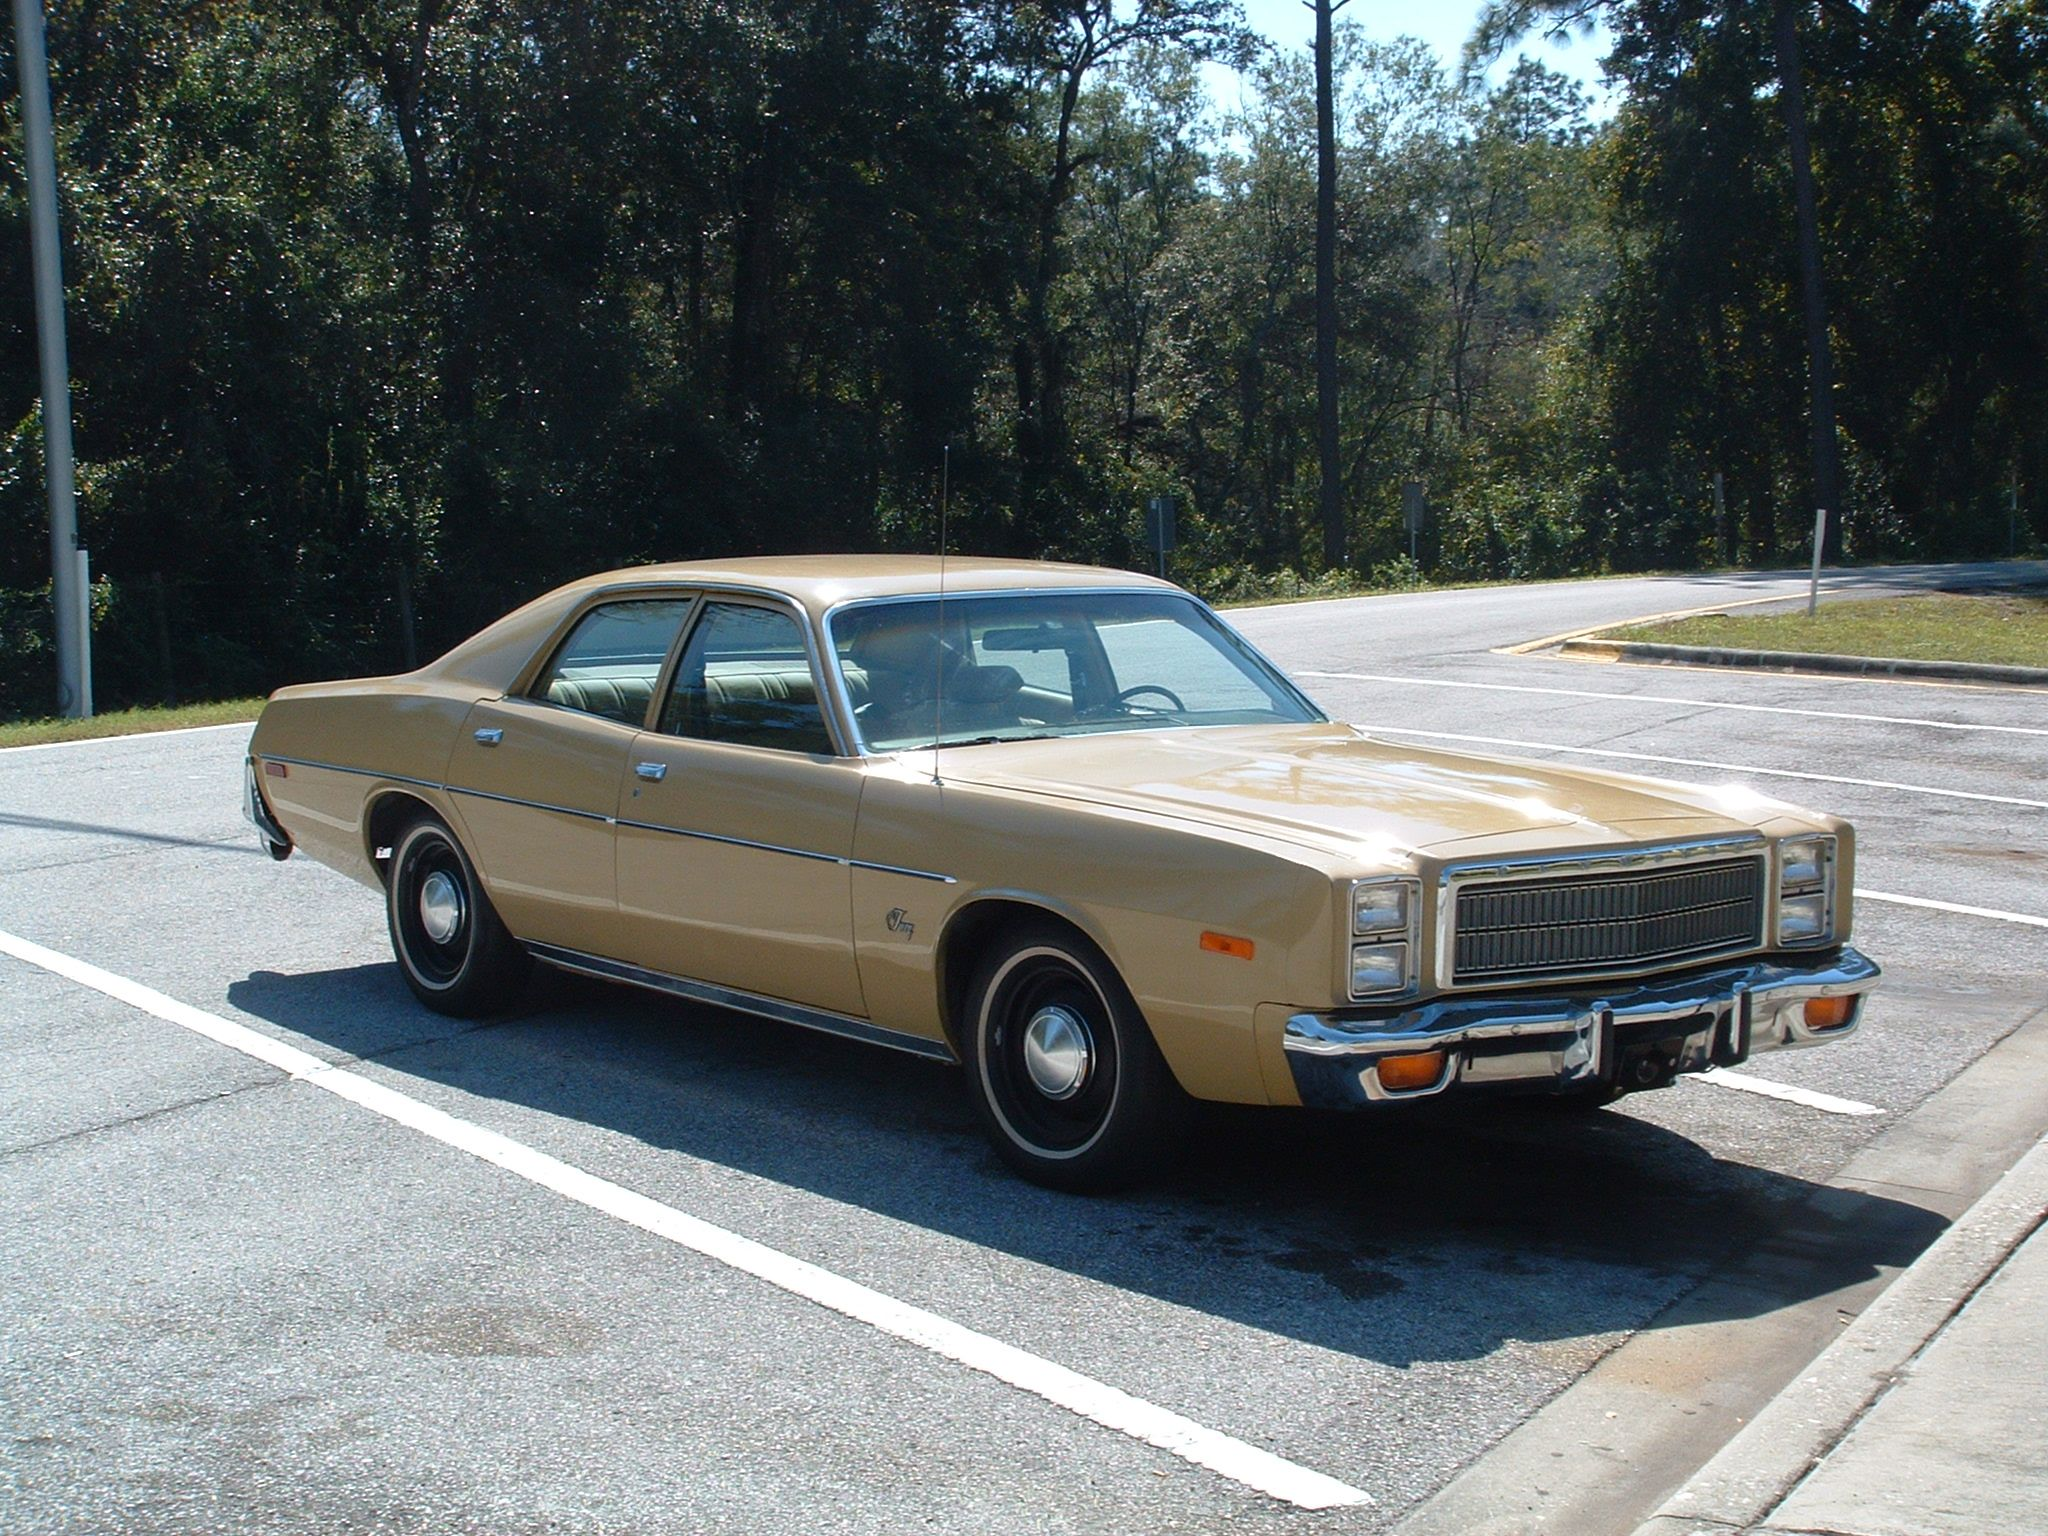 My first car was a 1977 Plymouth Fury (looked just like this 1978 ...